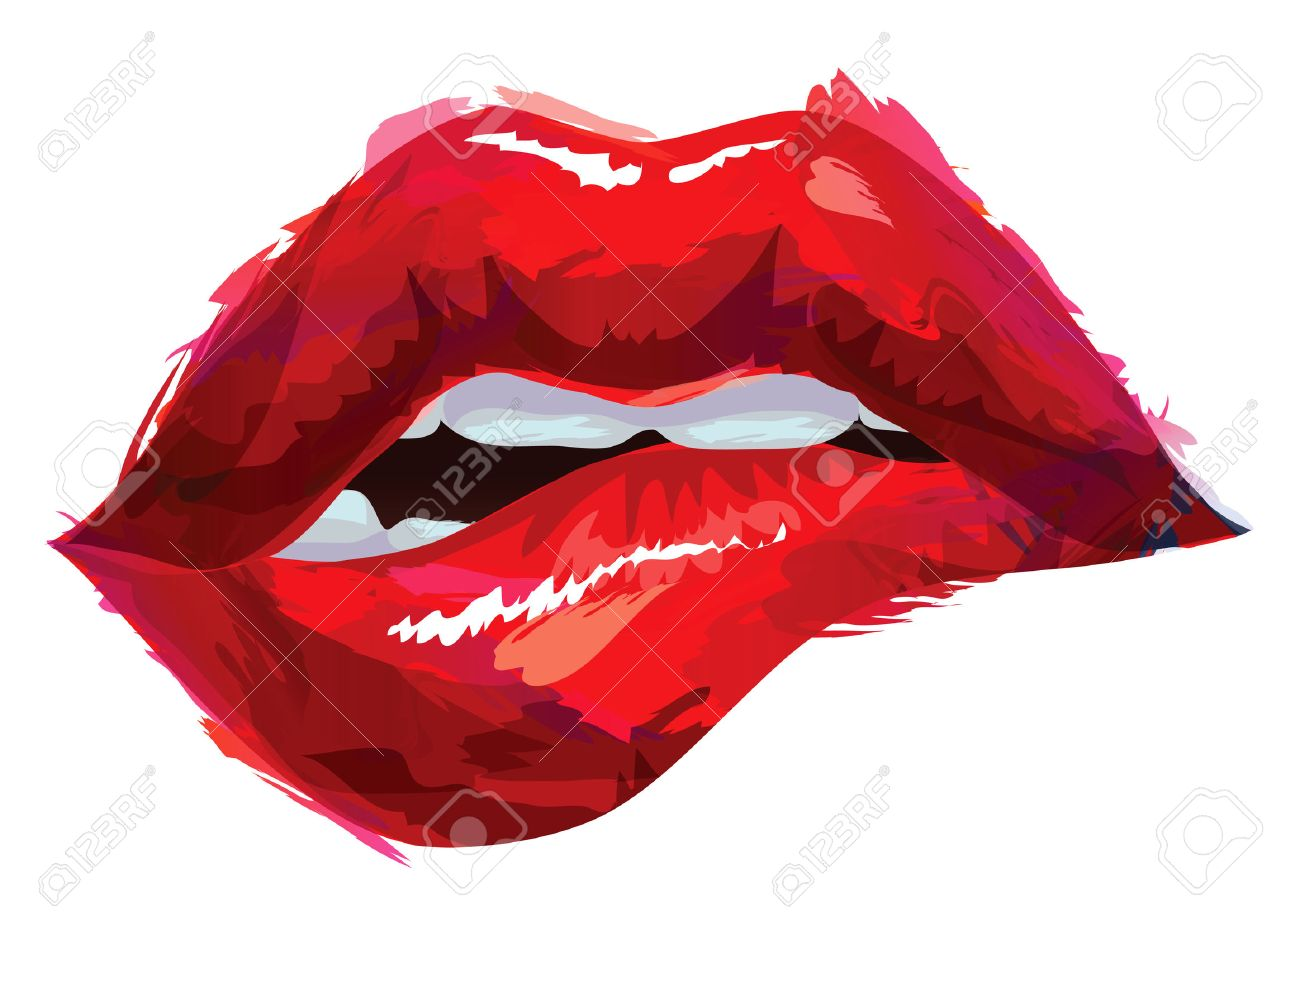 75 132 sexy woman stock vector illustration and royalty free sexy rh 123rf com Attractive Lady Clip Art Lipstick Print Clip Art